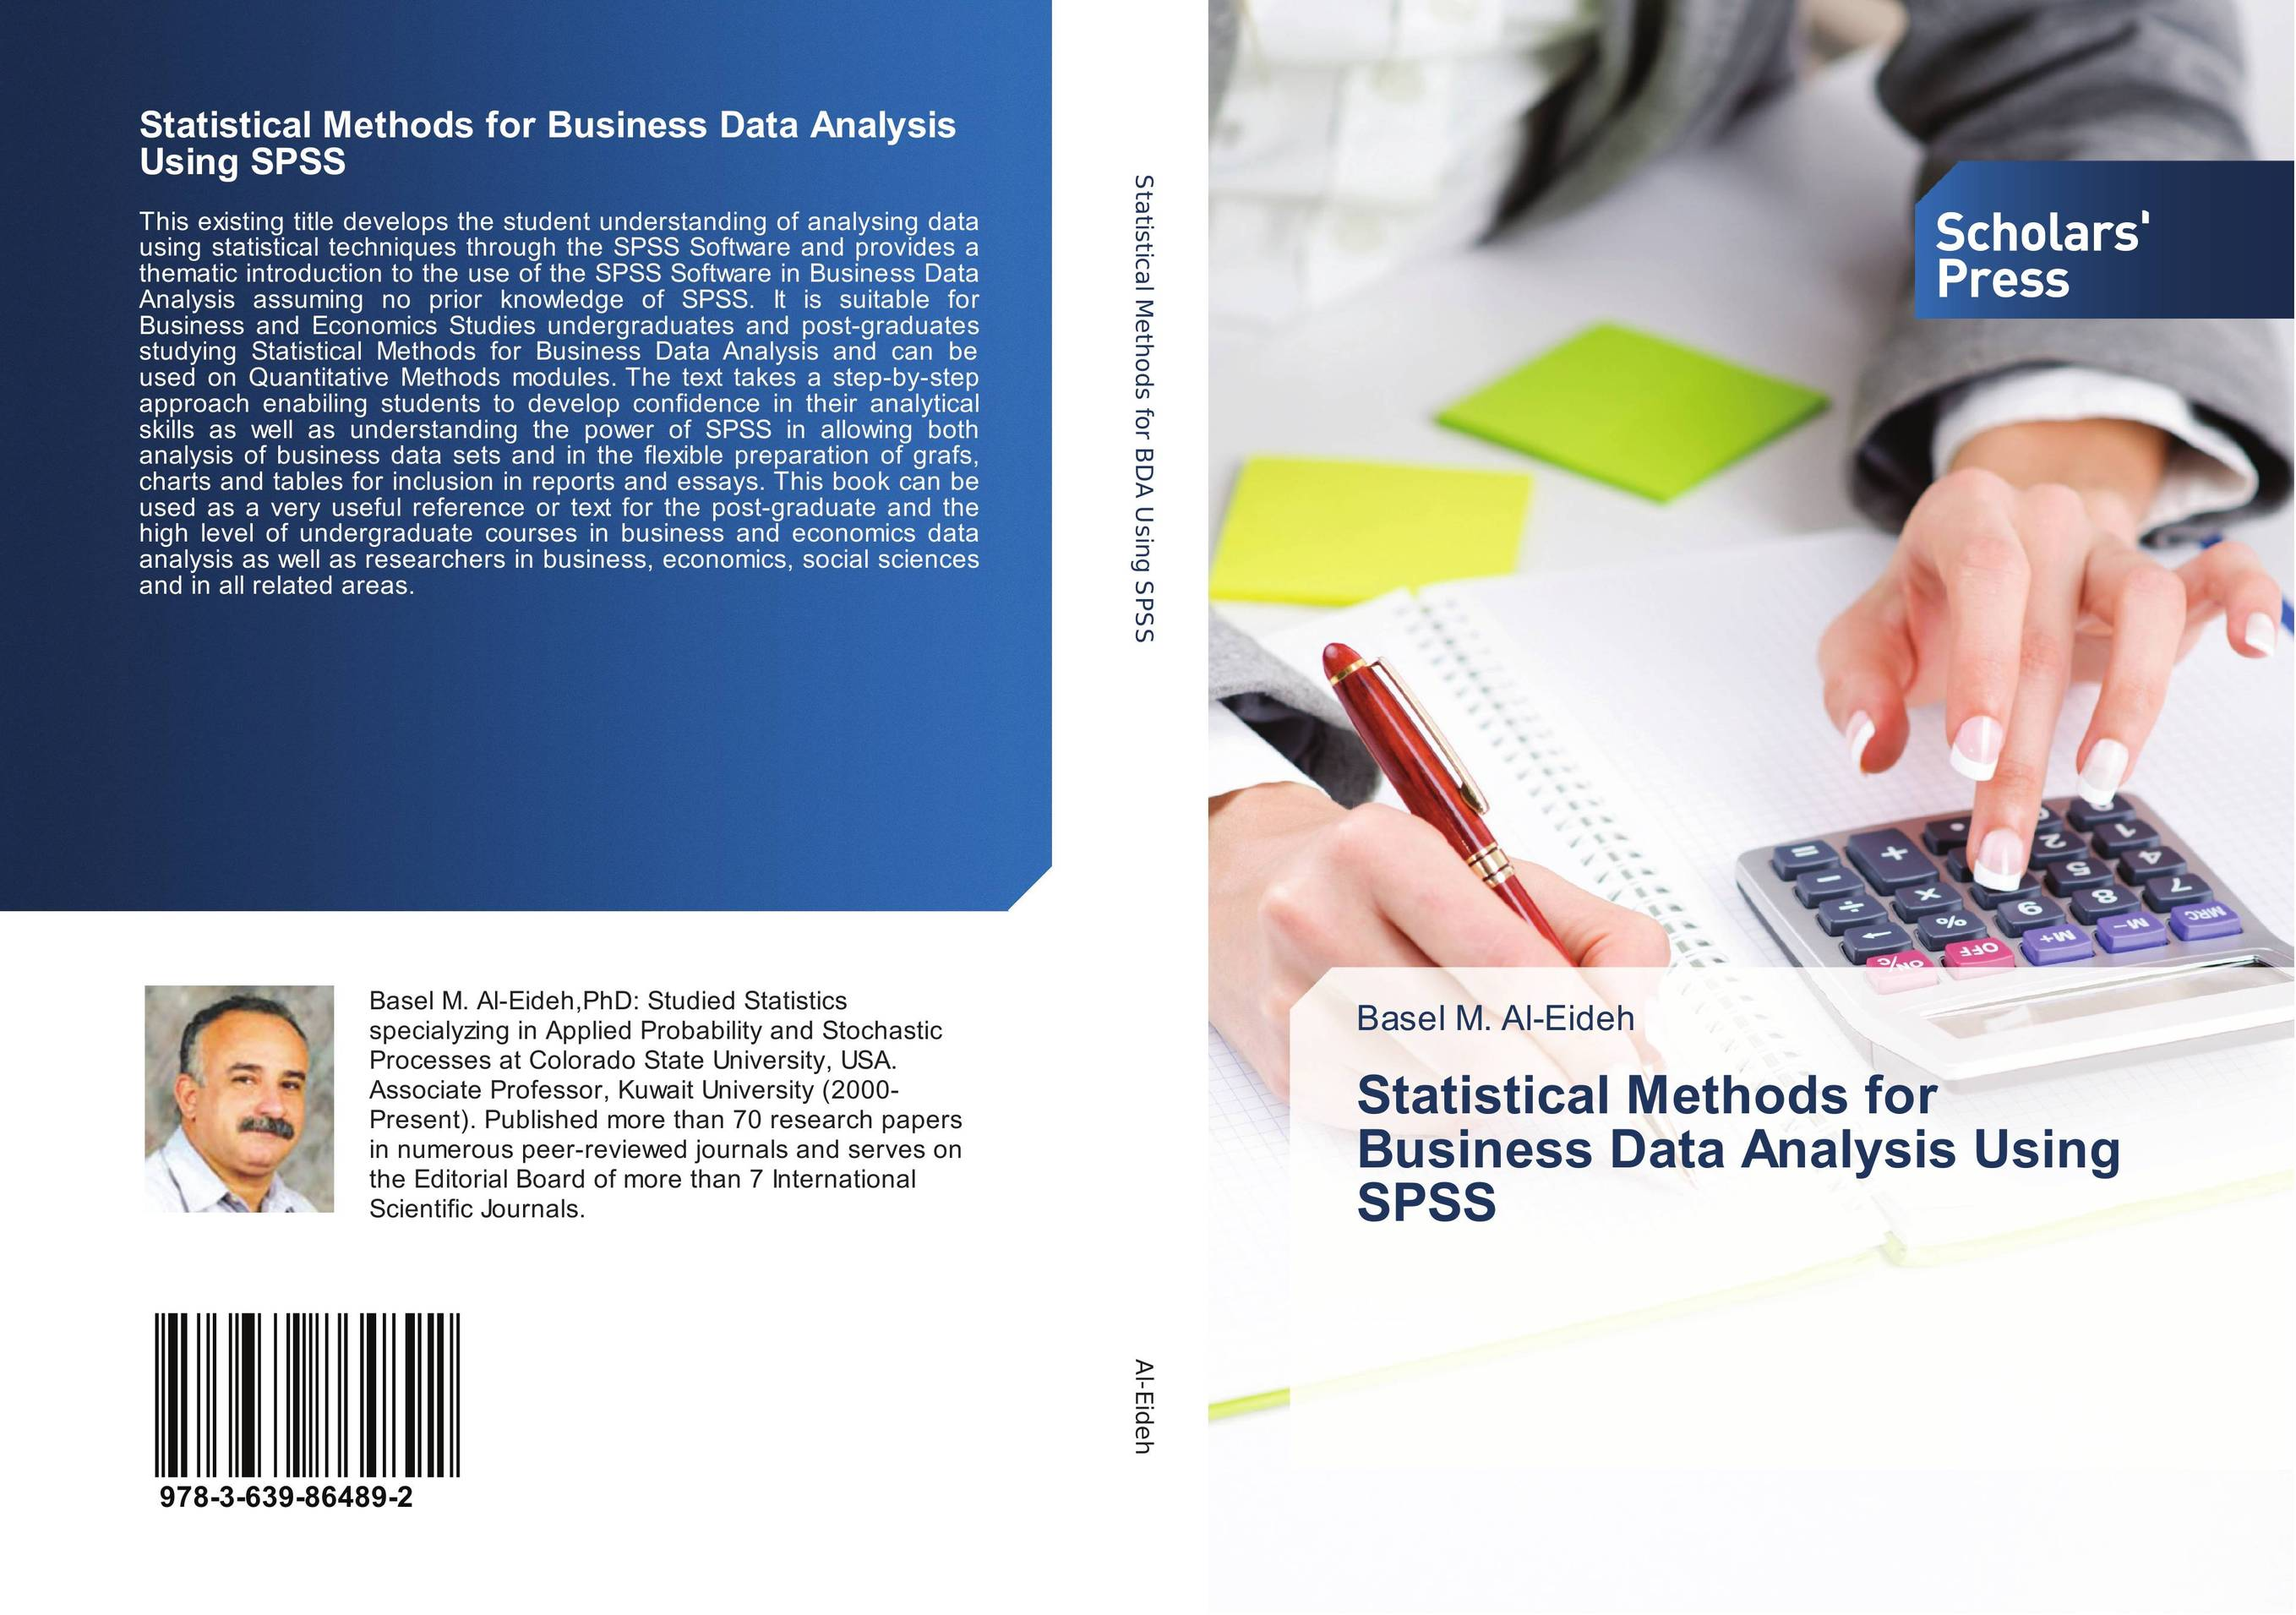 Statistical Methods for Business Data Analysis Using SPSS